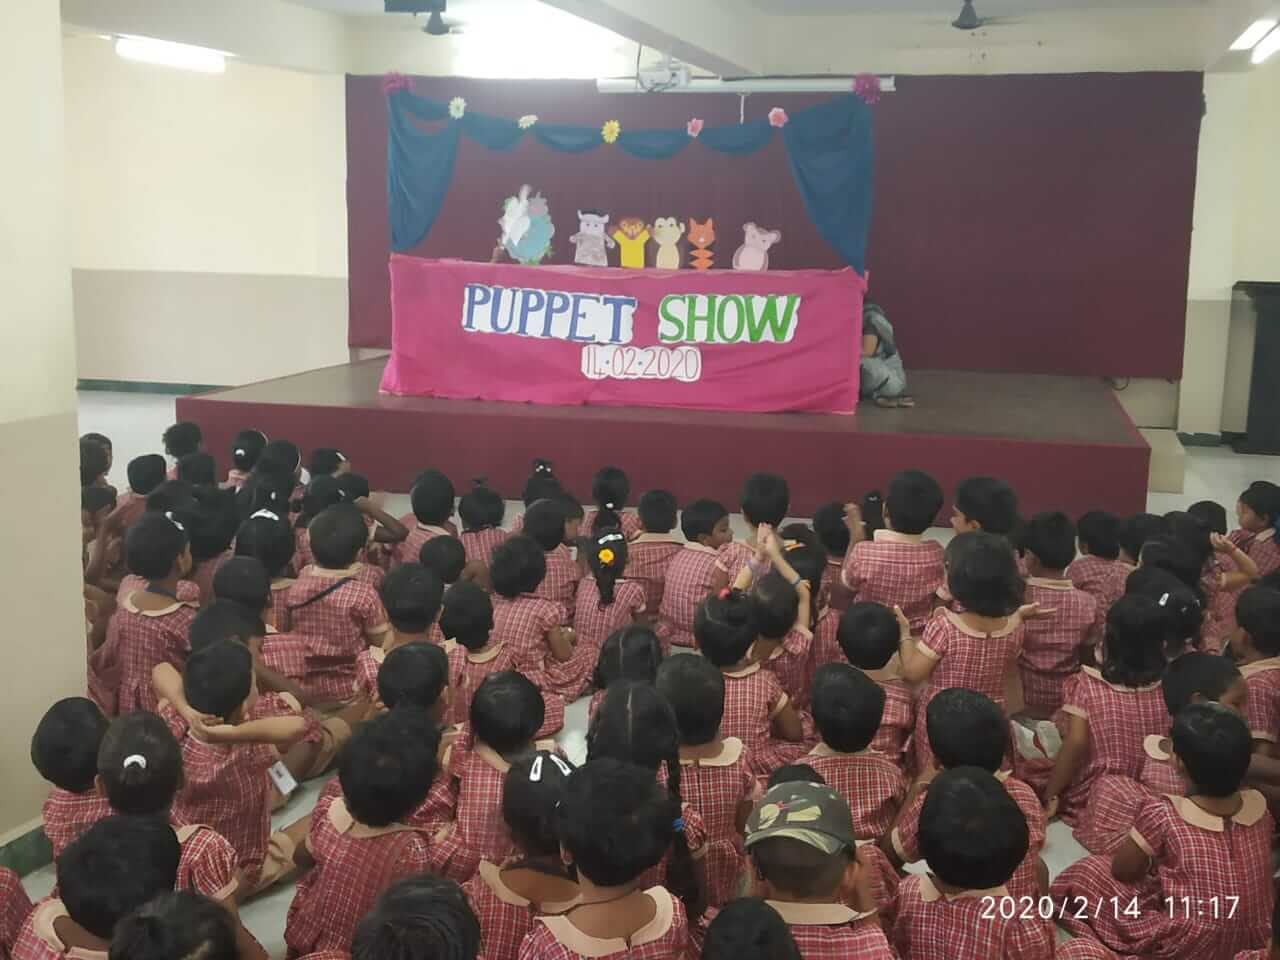 Eye catching show by puppets to the petits